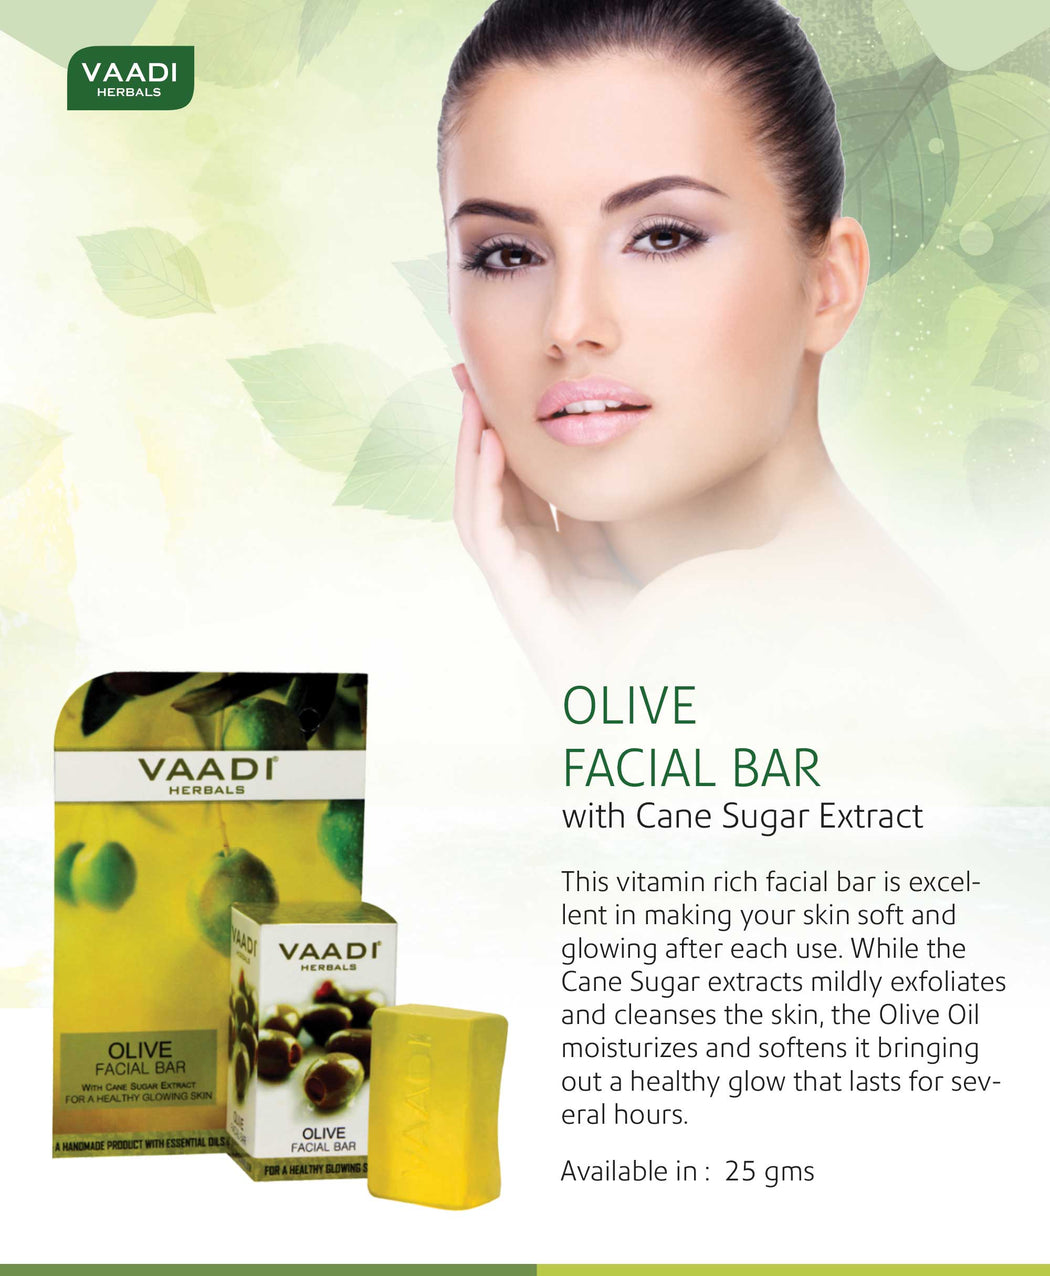 Organic Olive Facial Bar with Cane Sugar Extract - Exfoliates and Cleanses the Skin (25 gms/0.9 oz)